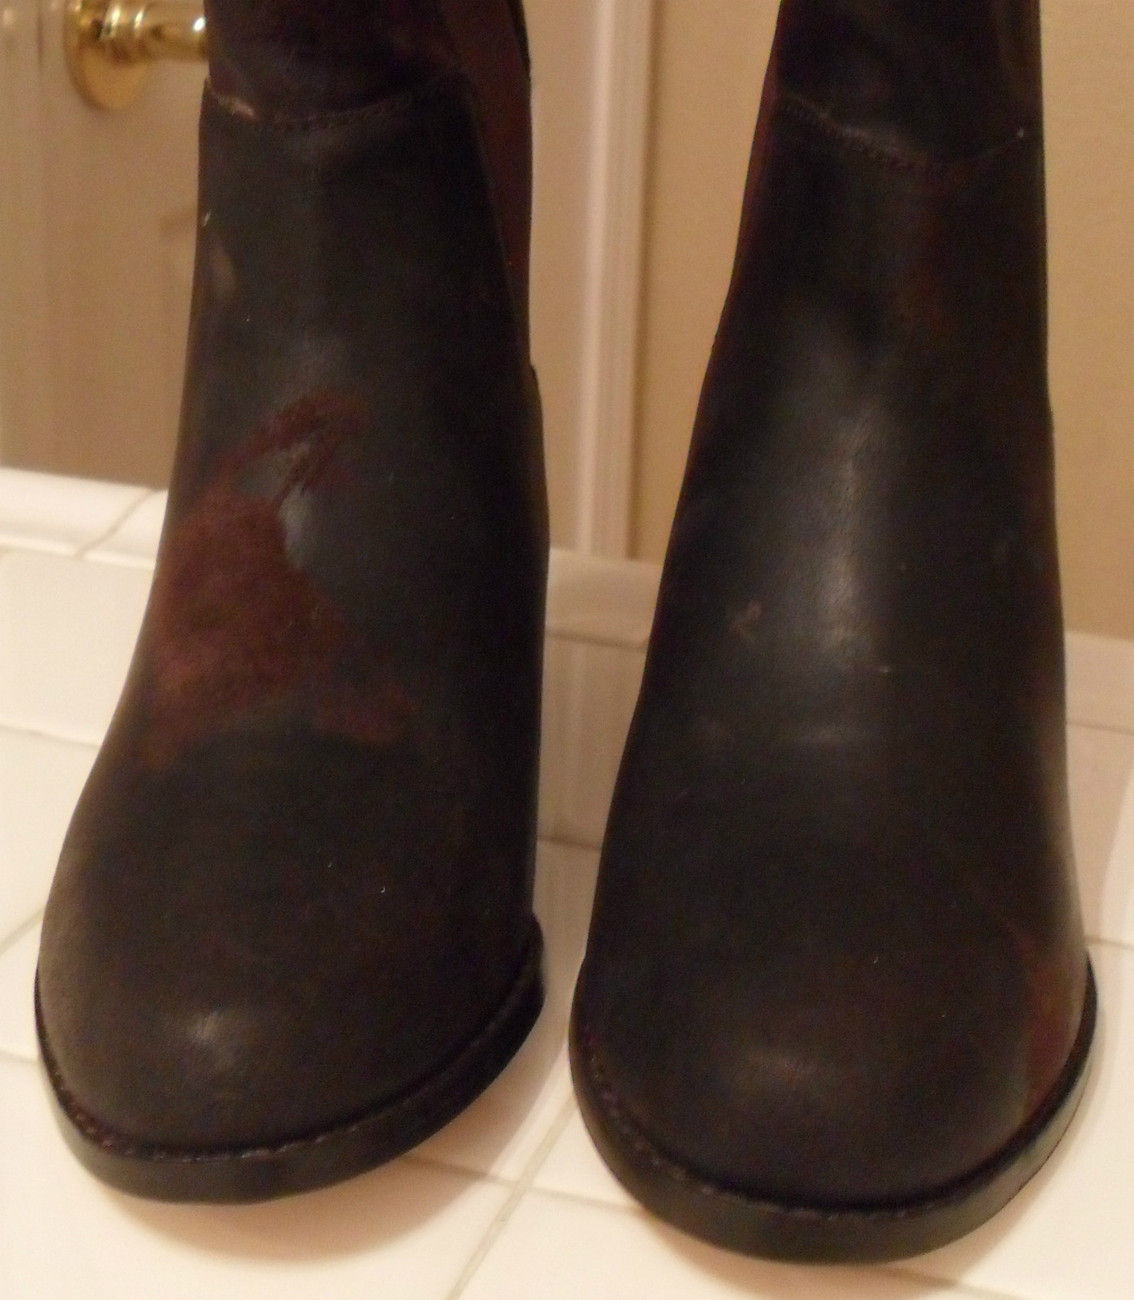 NEW KORS MICHAEL KORS Val Dark Brown Waxy Suede Boots 6.5 (MAKE AN OFFER)